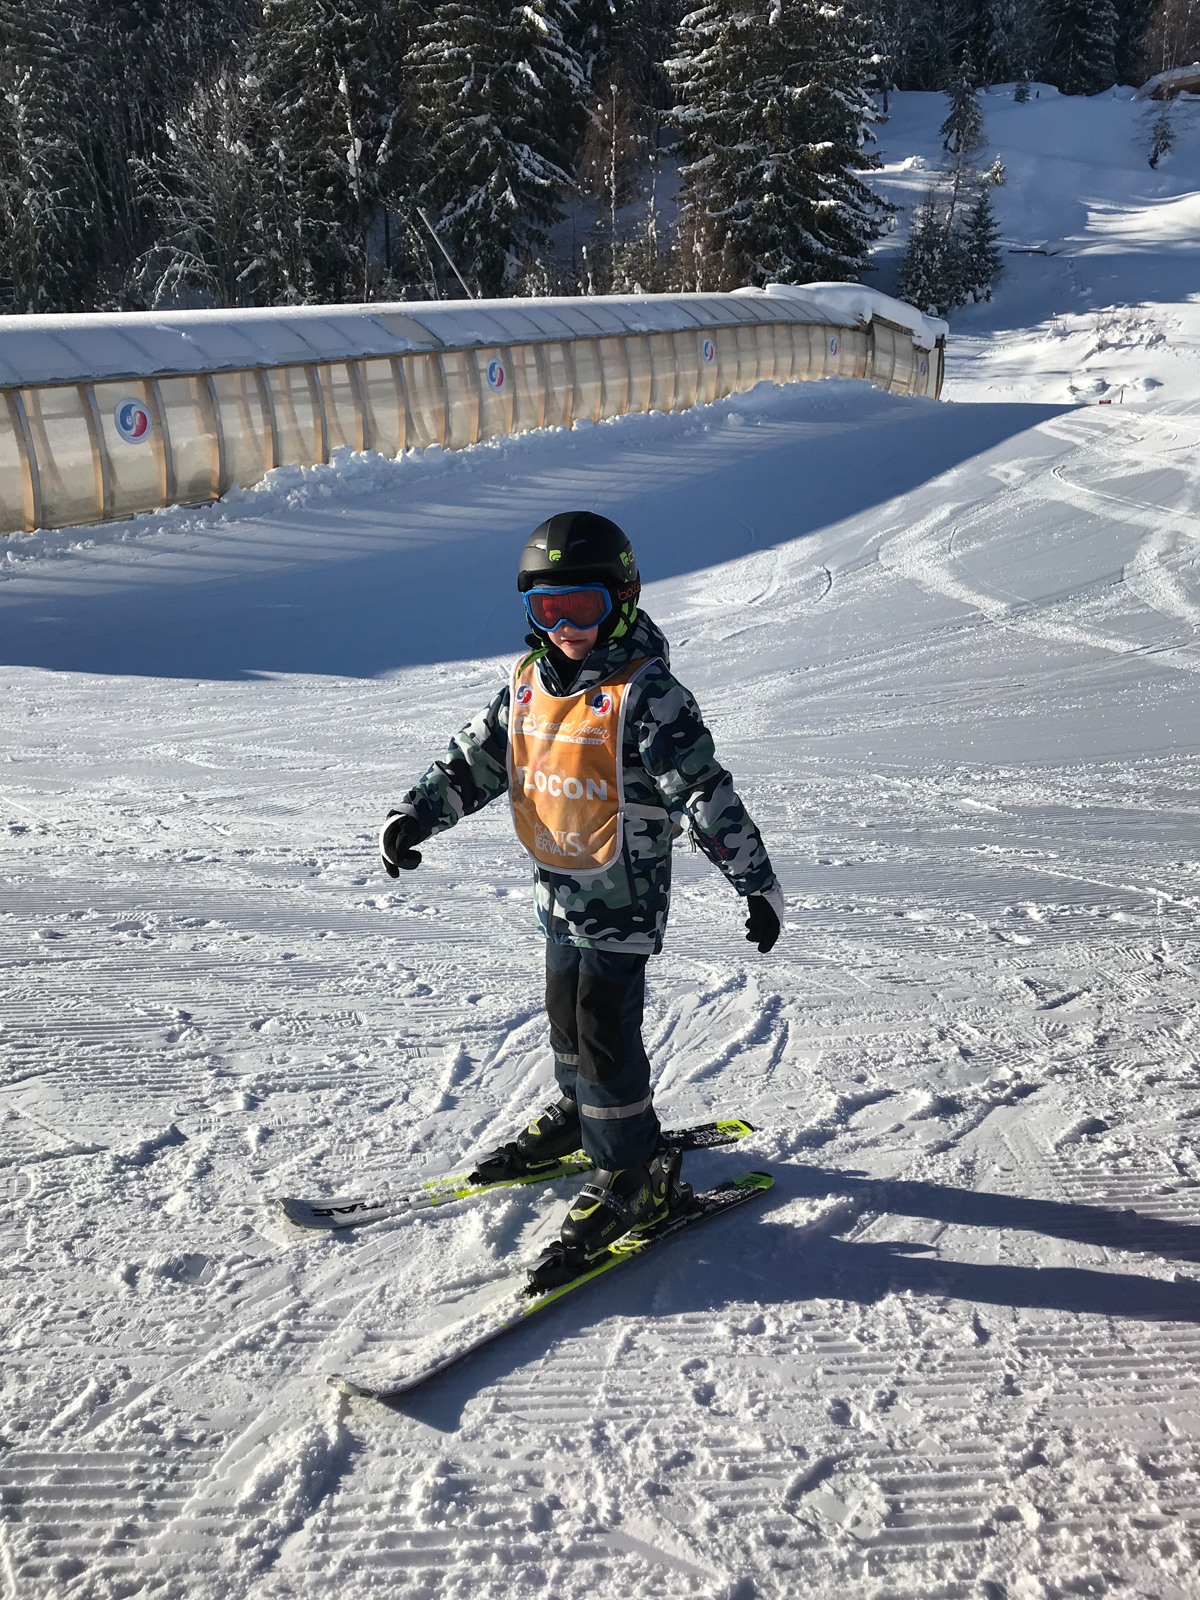 The 6yo learning to ski at St Gervais's excellent ski school